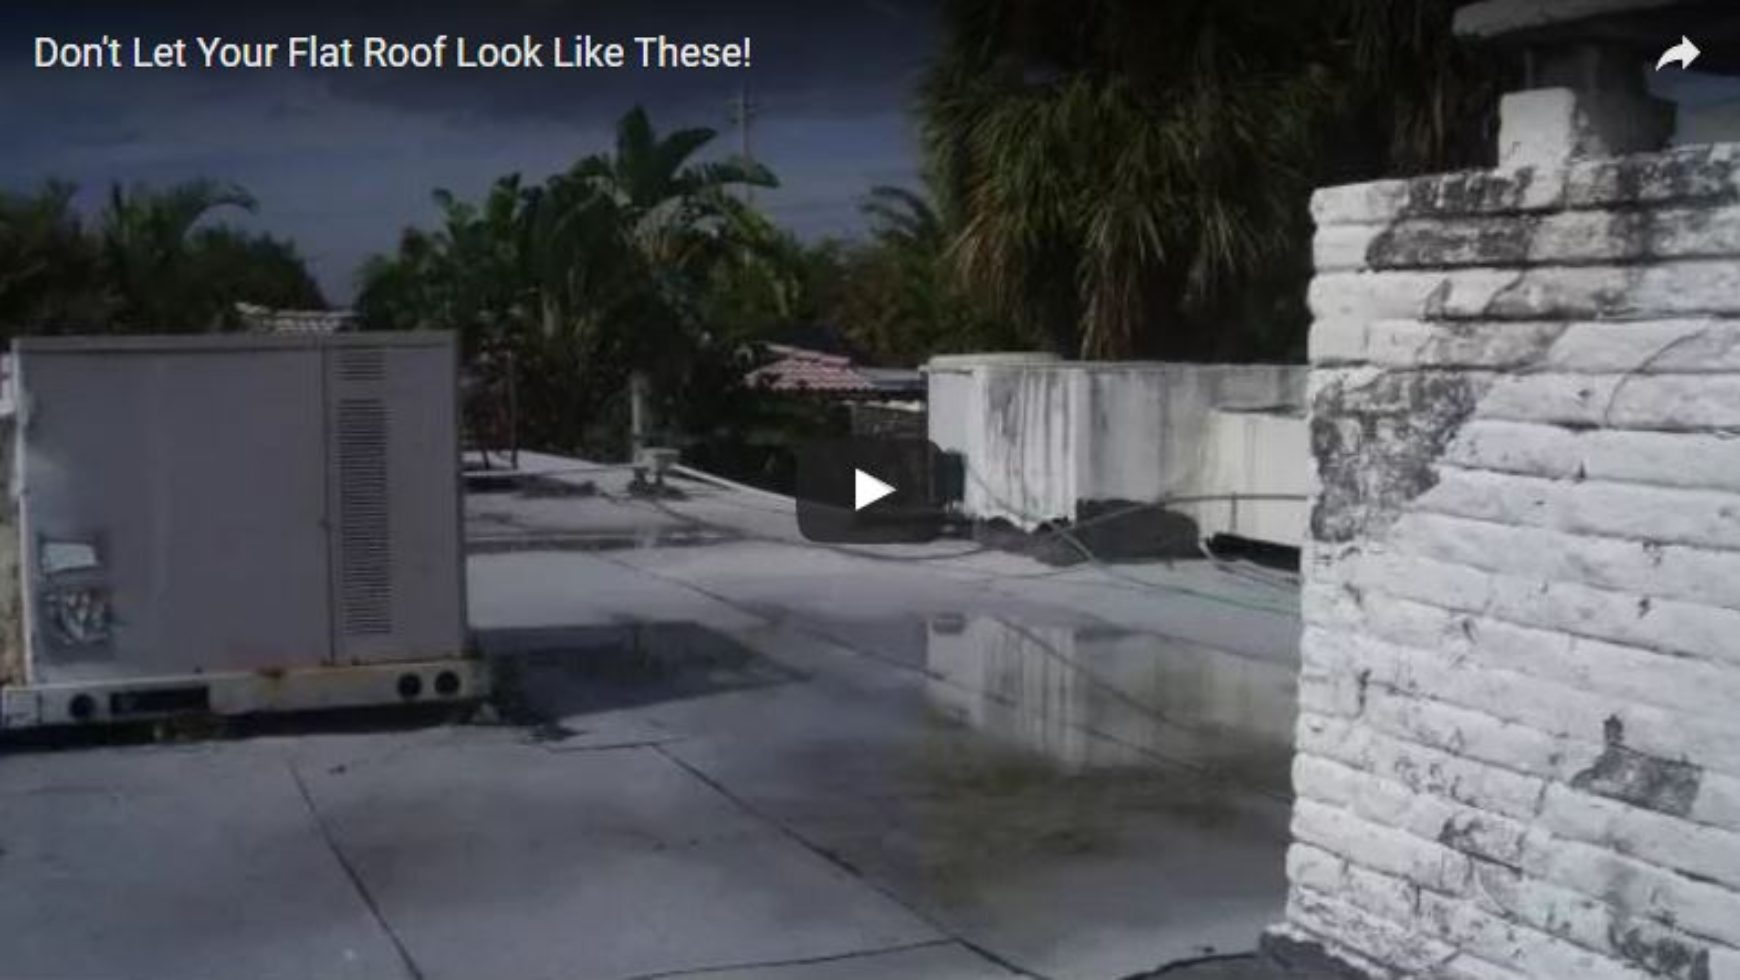 Don't Let Your Flat Roof Look Like These!